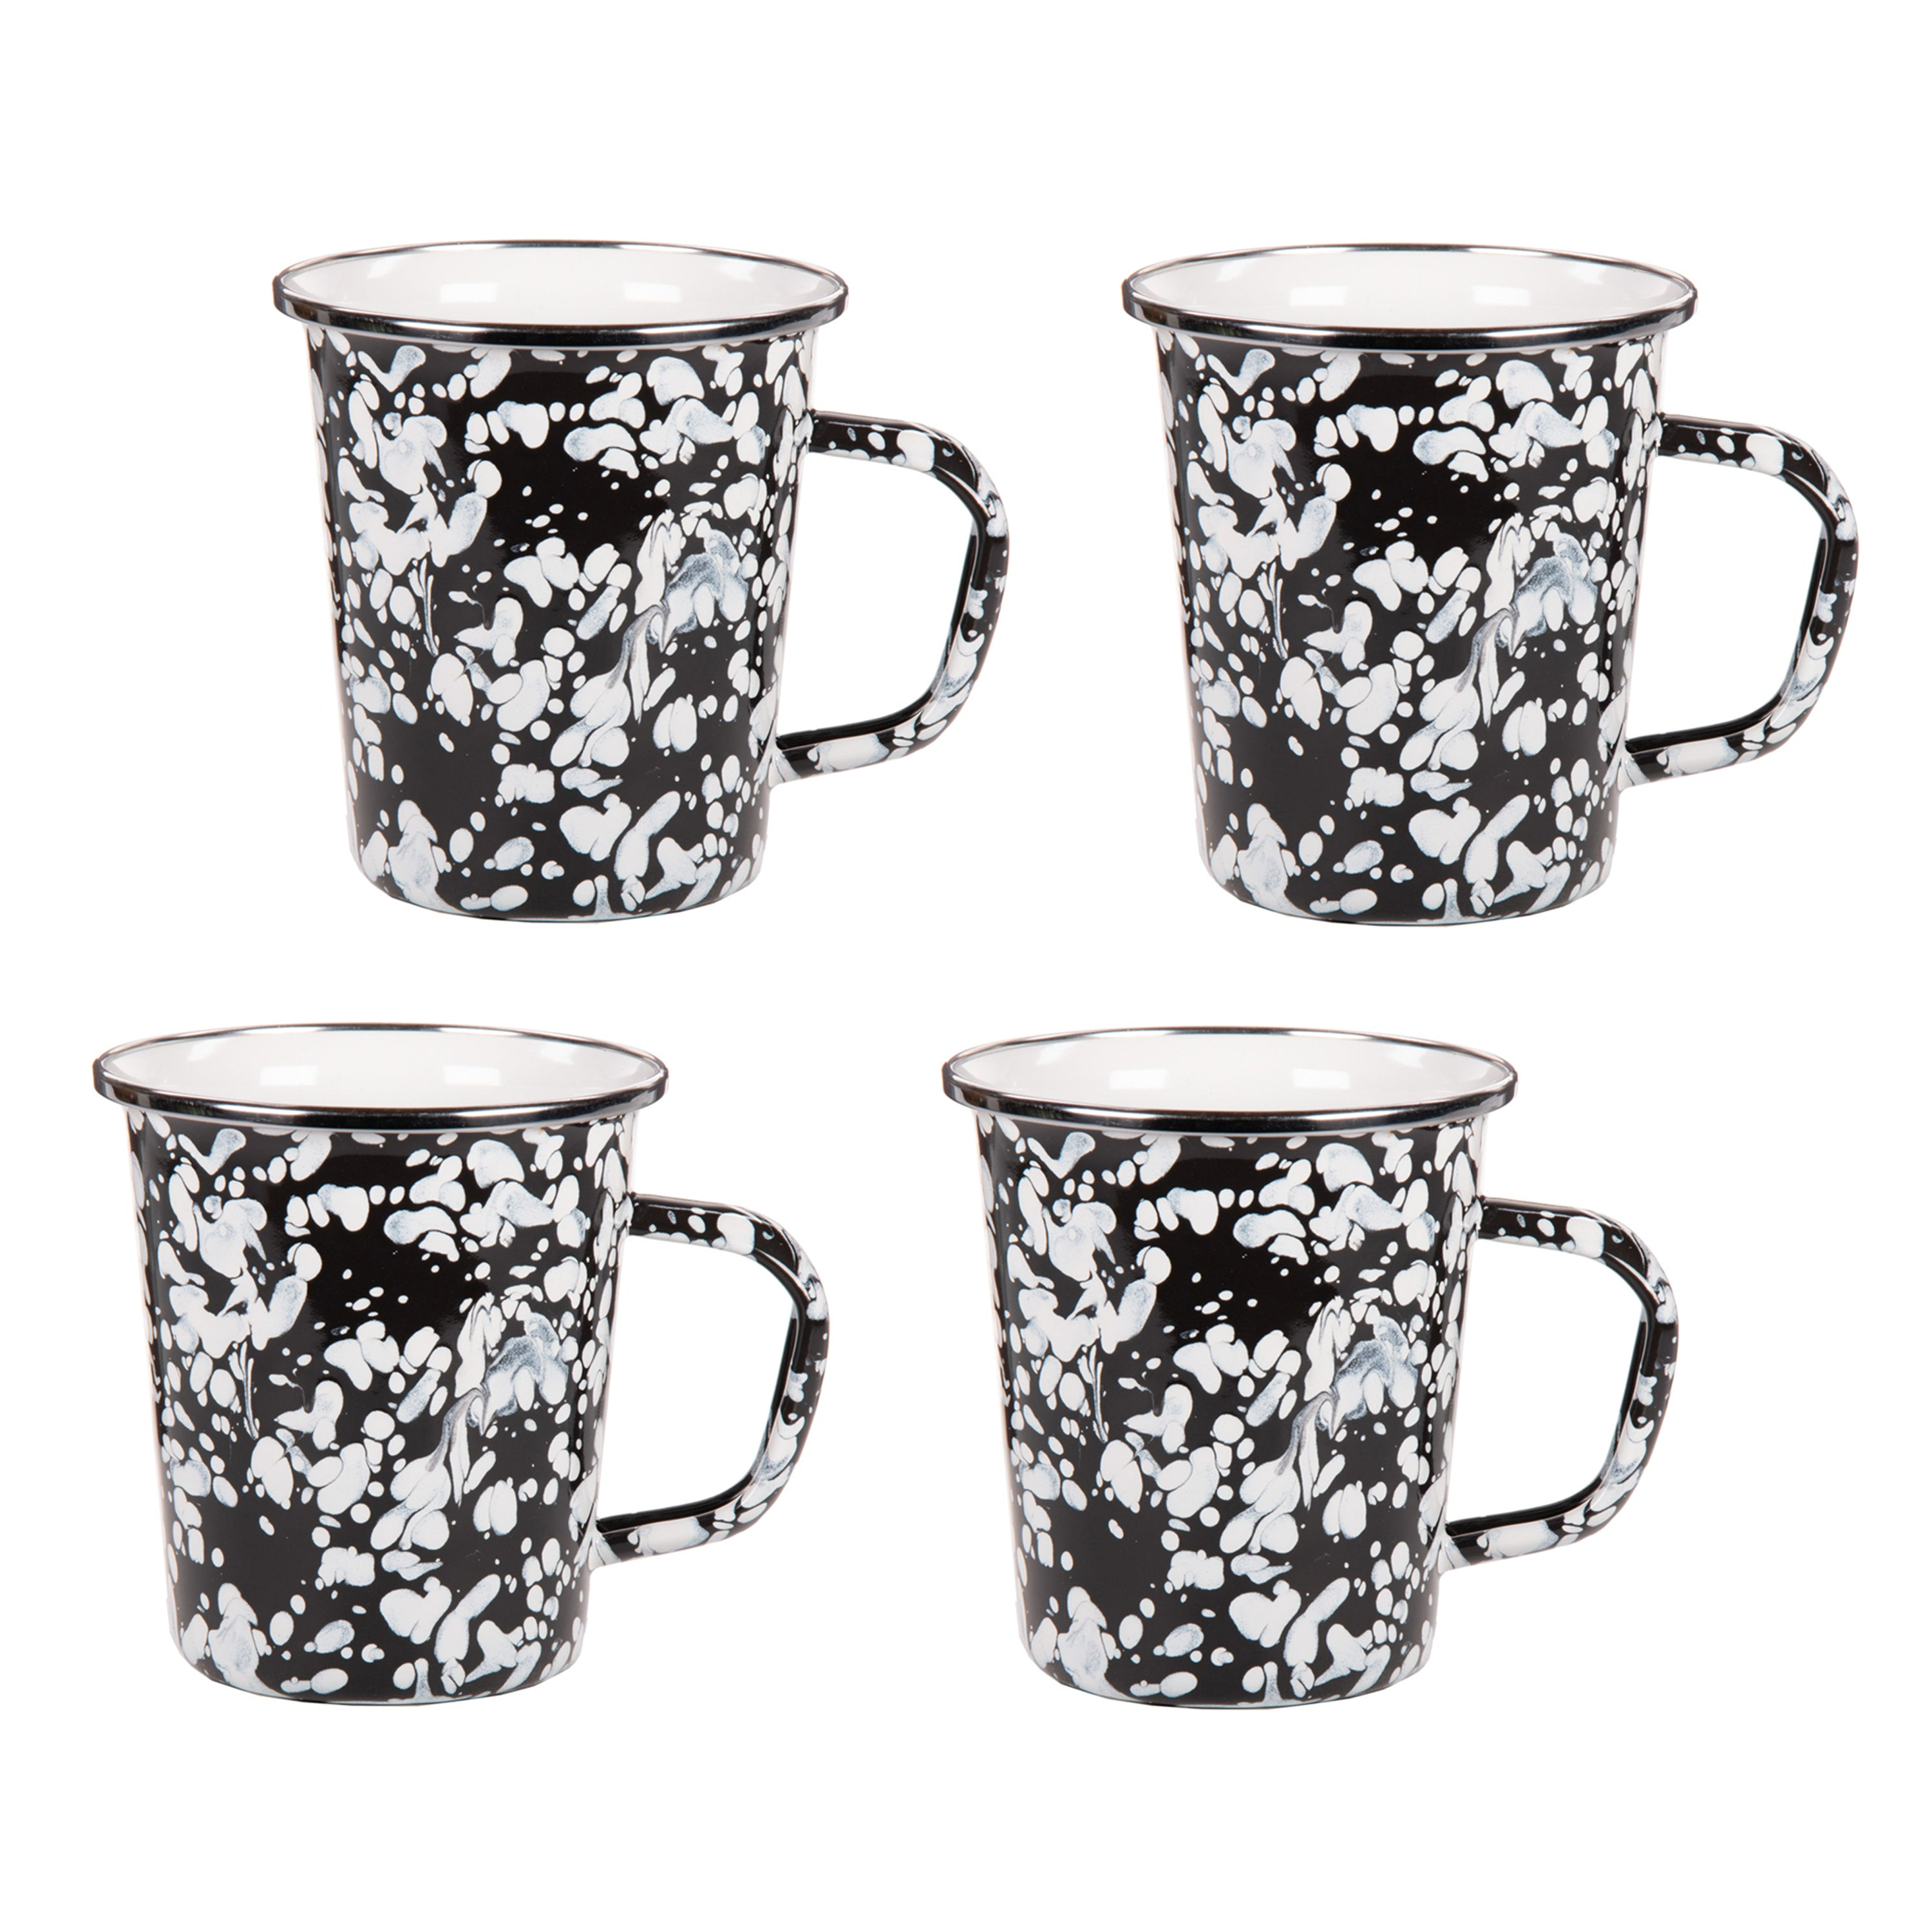 BL66S4 - Set of 4 Black Swirl Latte Mugs Image 1